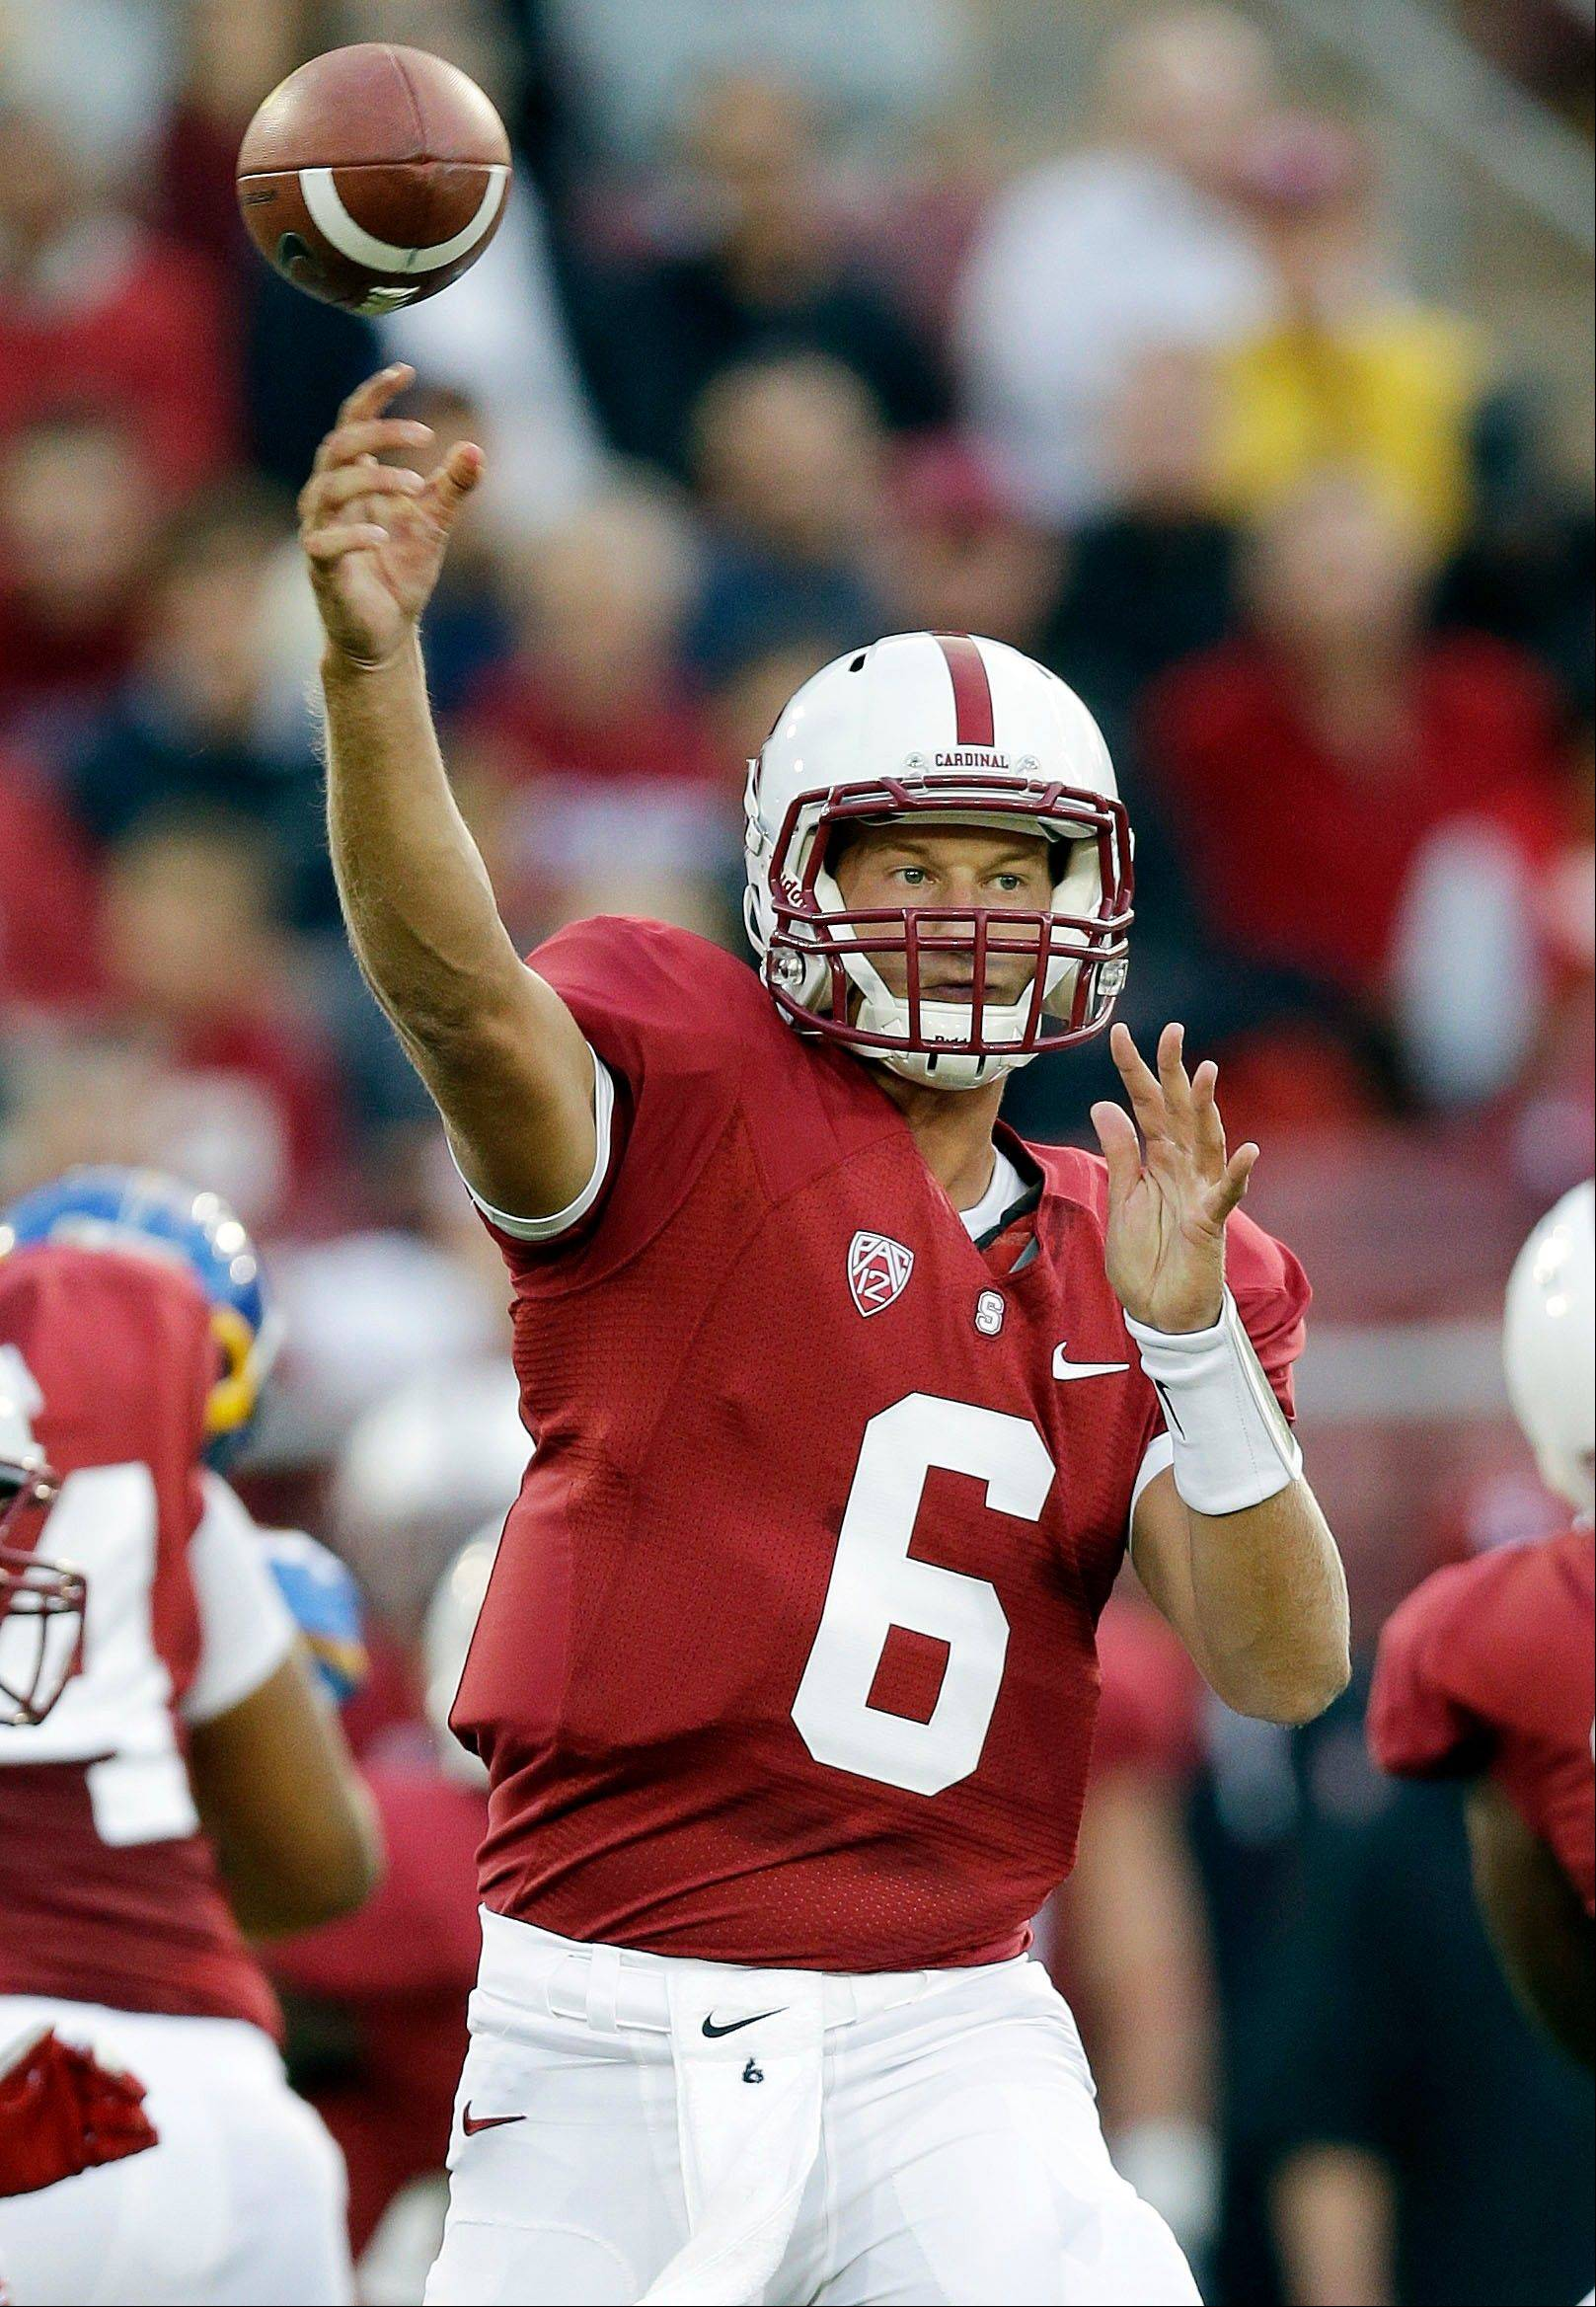 Stanford quarterback Josh Nunes struggled late in the game Friday against San Jose State.